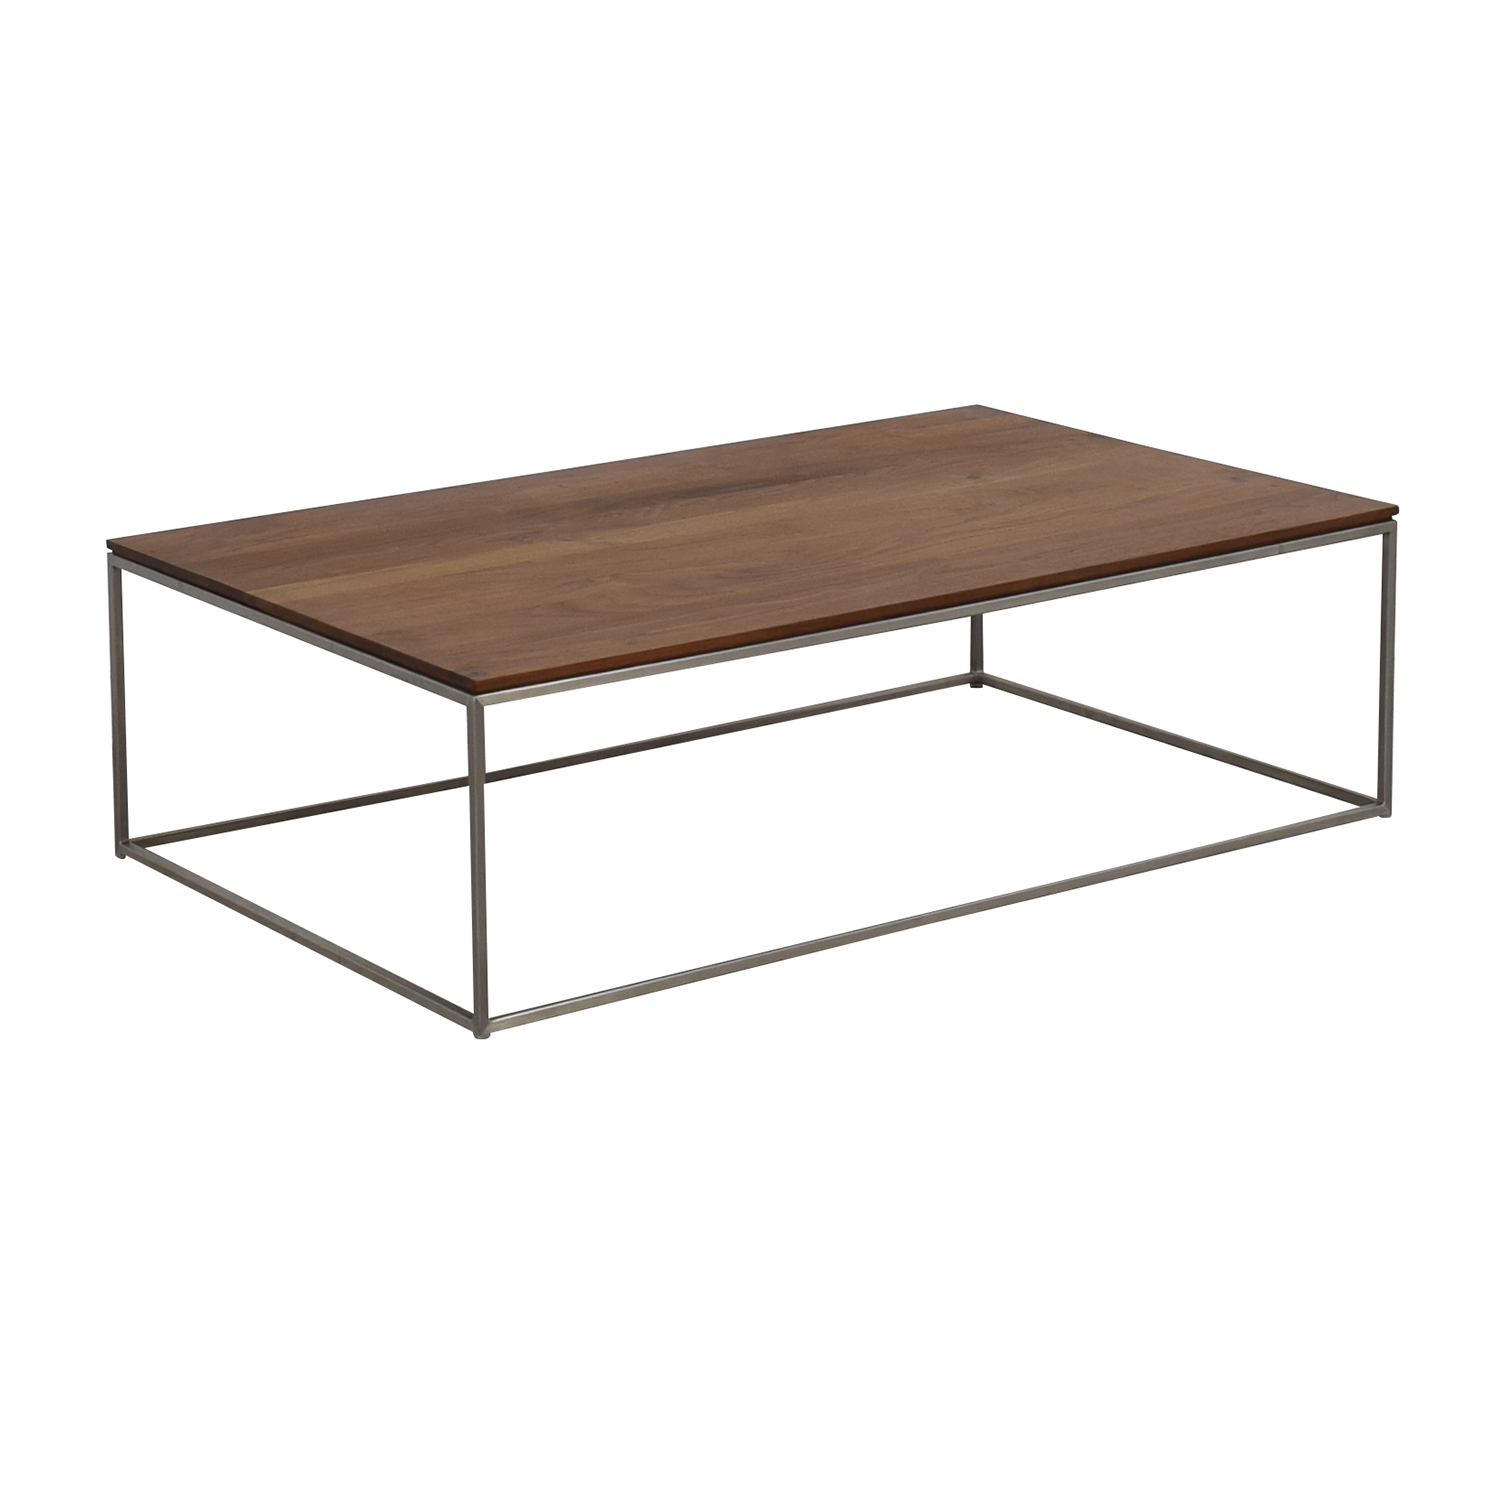 Crate & Barrel Crate & Barrel Frame Medium Coffee Table coupon